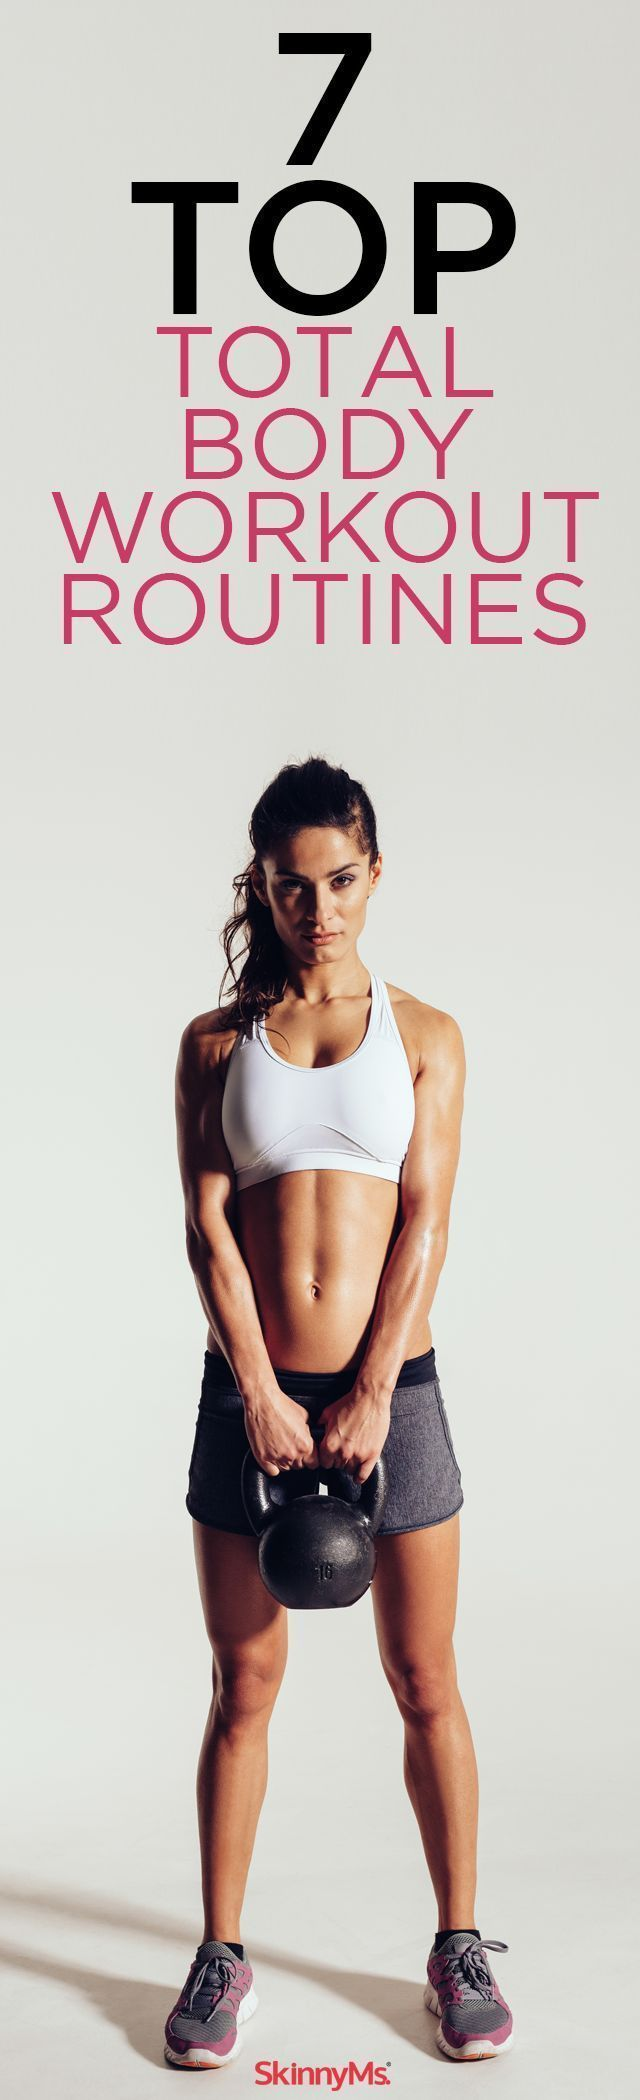 7 Top Total Body Workout Routines! #workout #fitness